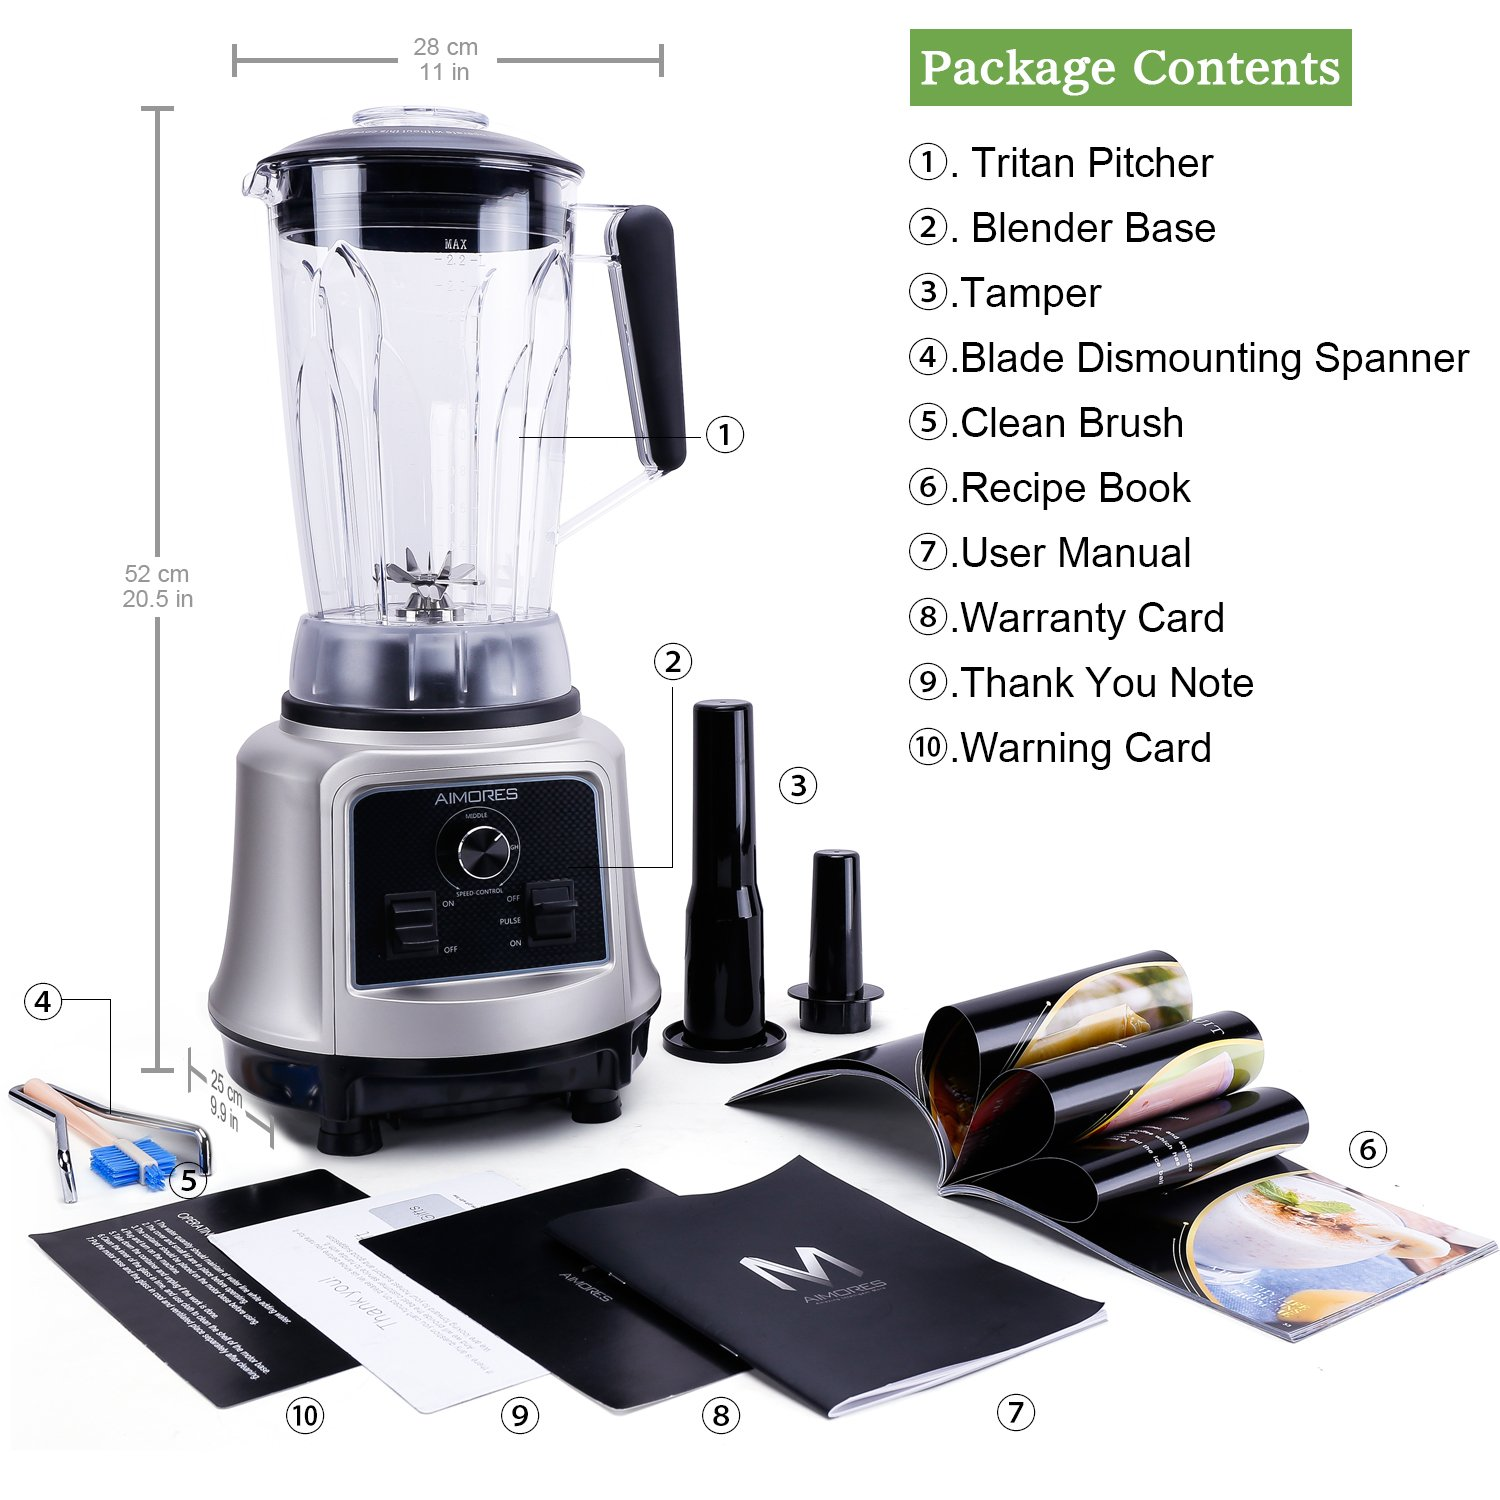 Professional Smoothie Blender Aimores | 750z High Speed Juicer, Ice Cream Maker | Optimized 6 Sharp Blades | Auto Clean & Simple Control | w/ Recipe & Tamper | ETL & FDA Certified (Silver) by ISUN (Image #6)